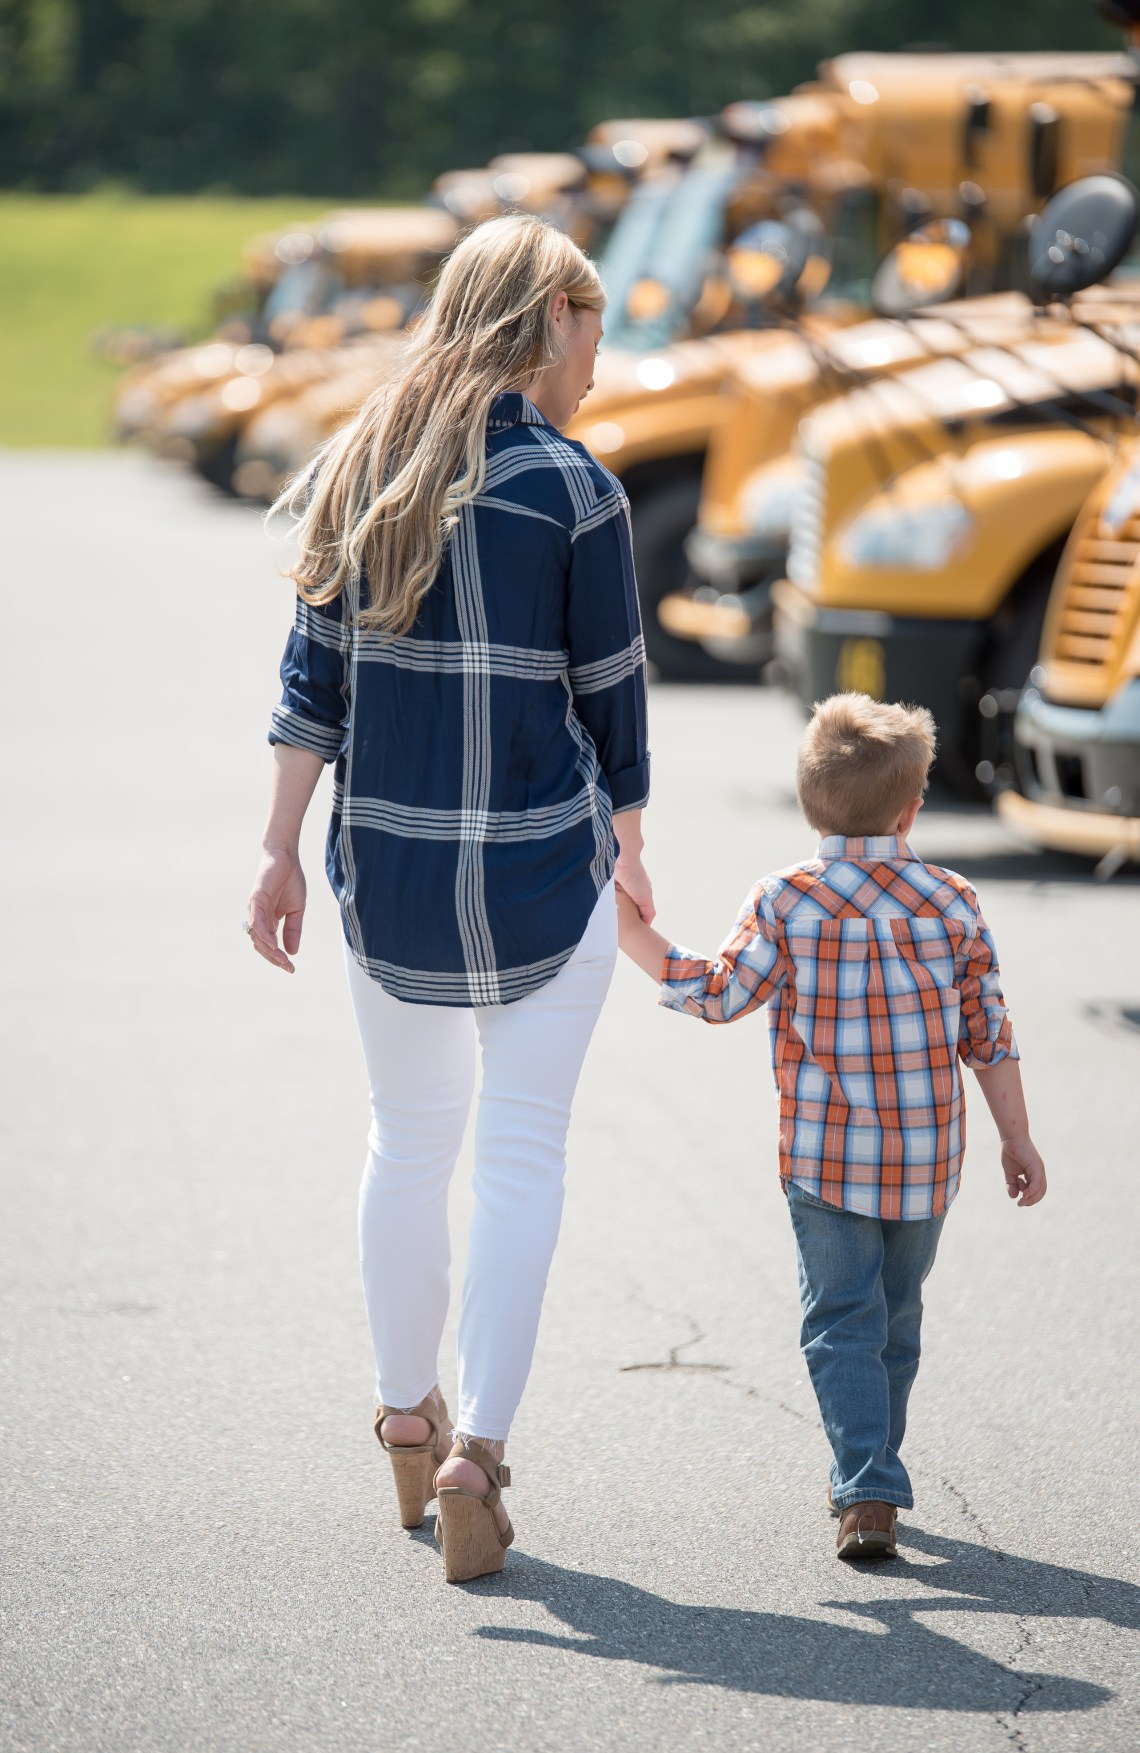 School Bus Safety Tips - Propane School Buses via Misty Nelson, Frosted Blog - motherhood and parenting blog